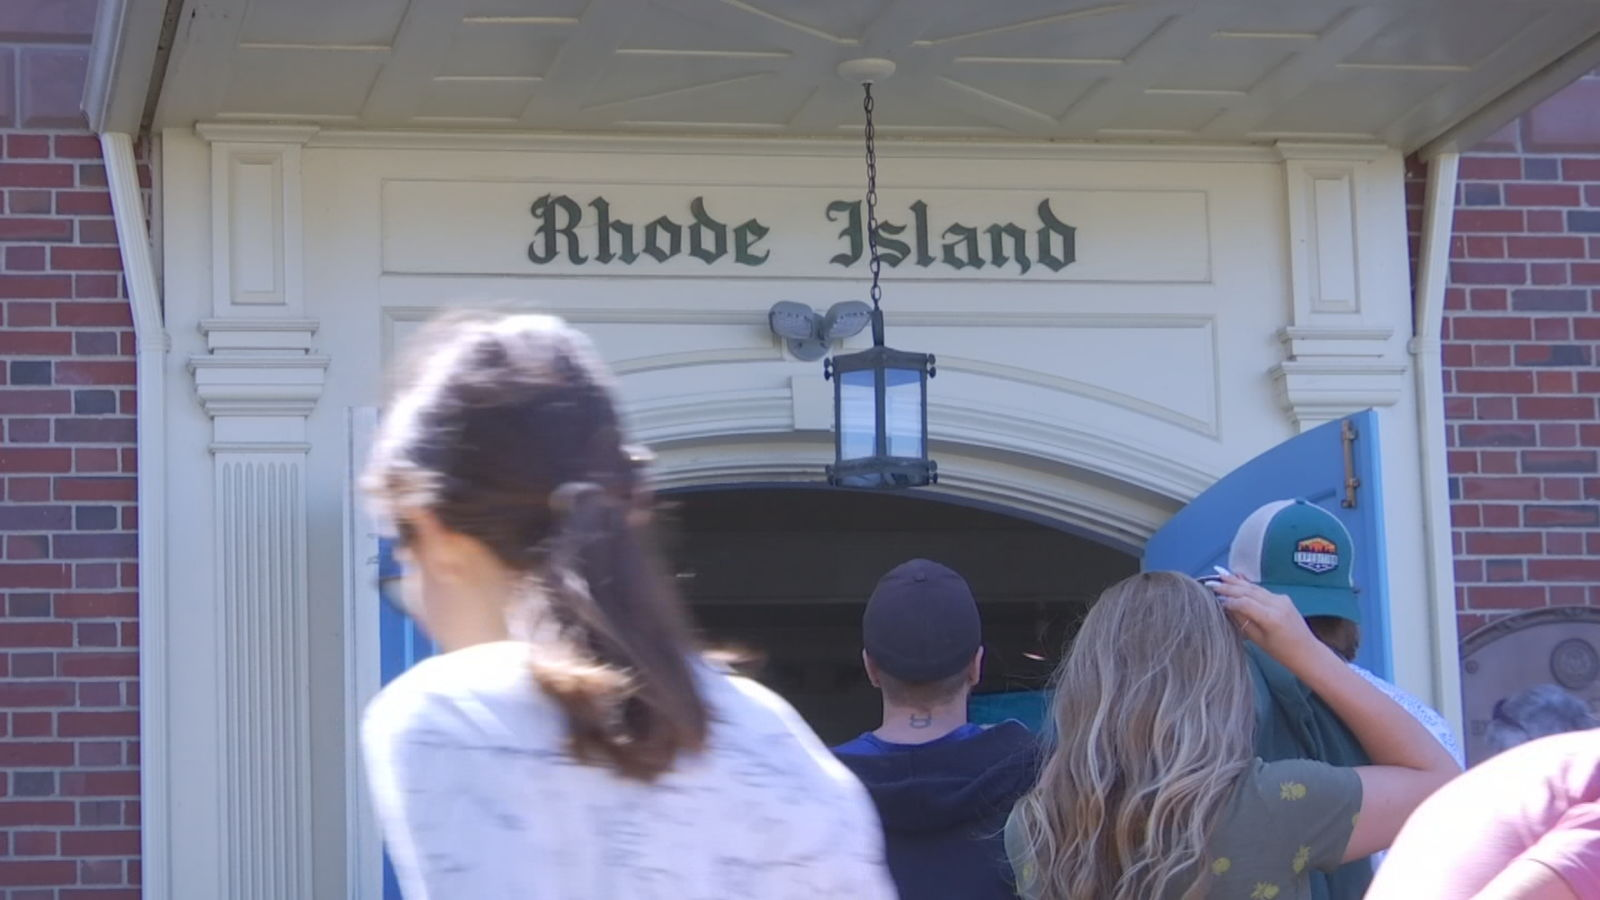 On Tuesday, Sept. 17, 2019, Rhode Islanders at the Big E were upset that Kenyon's Grist Mill was absent from this year's event. (WJAR)